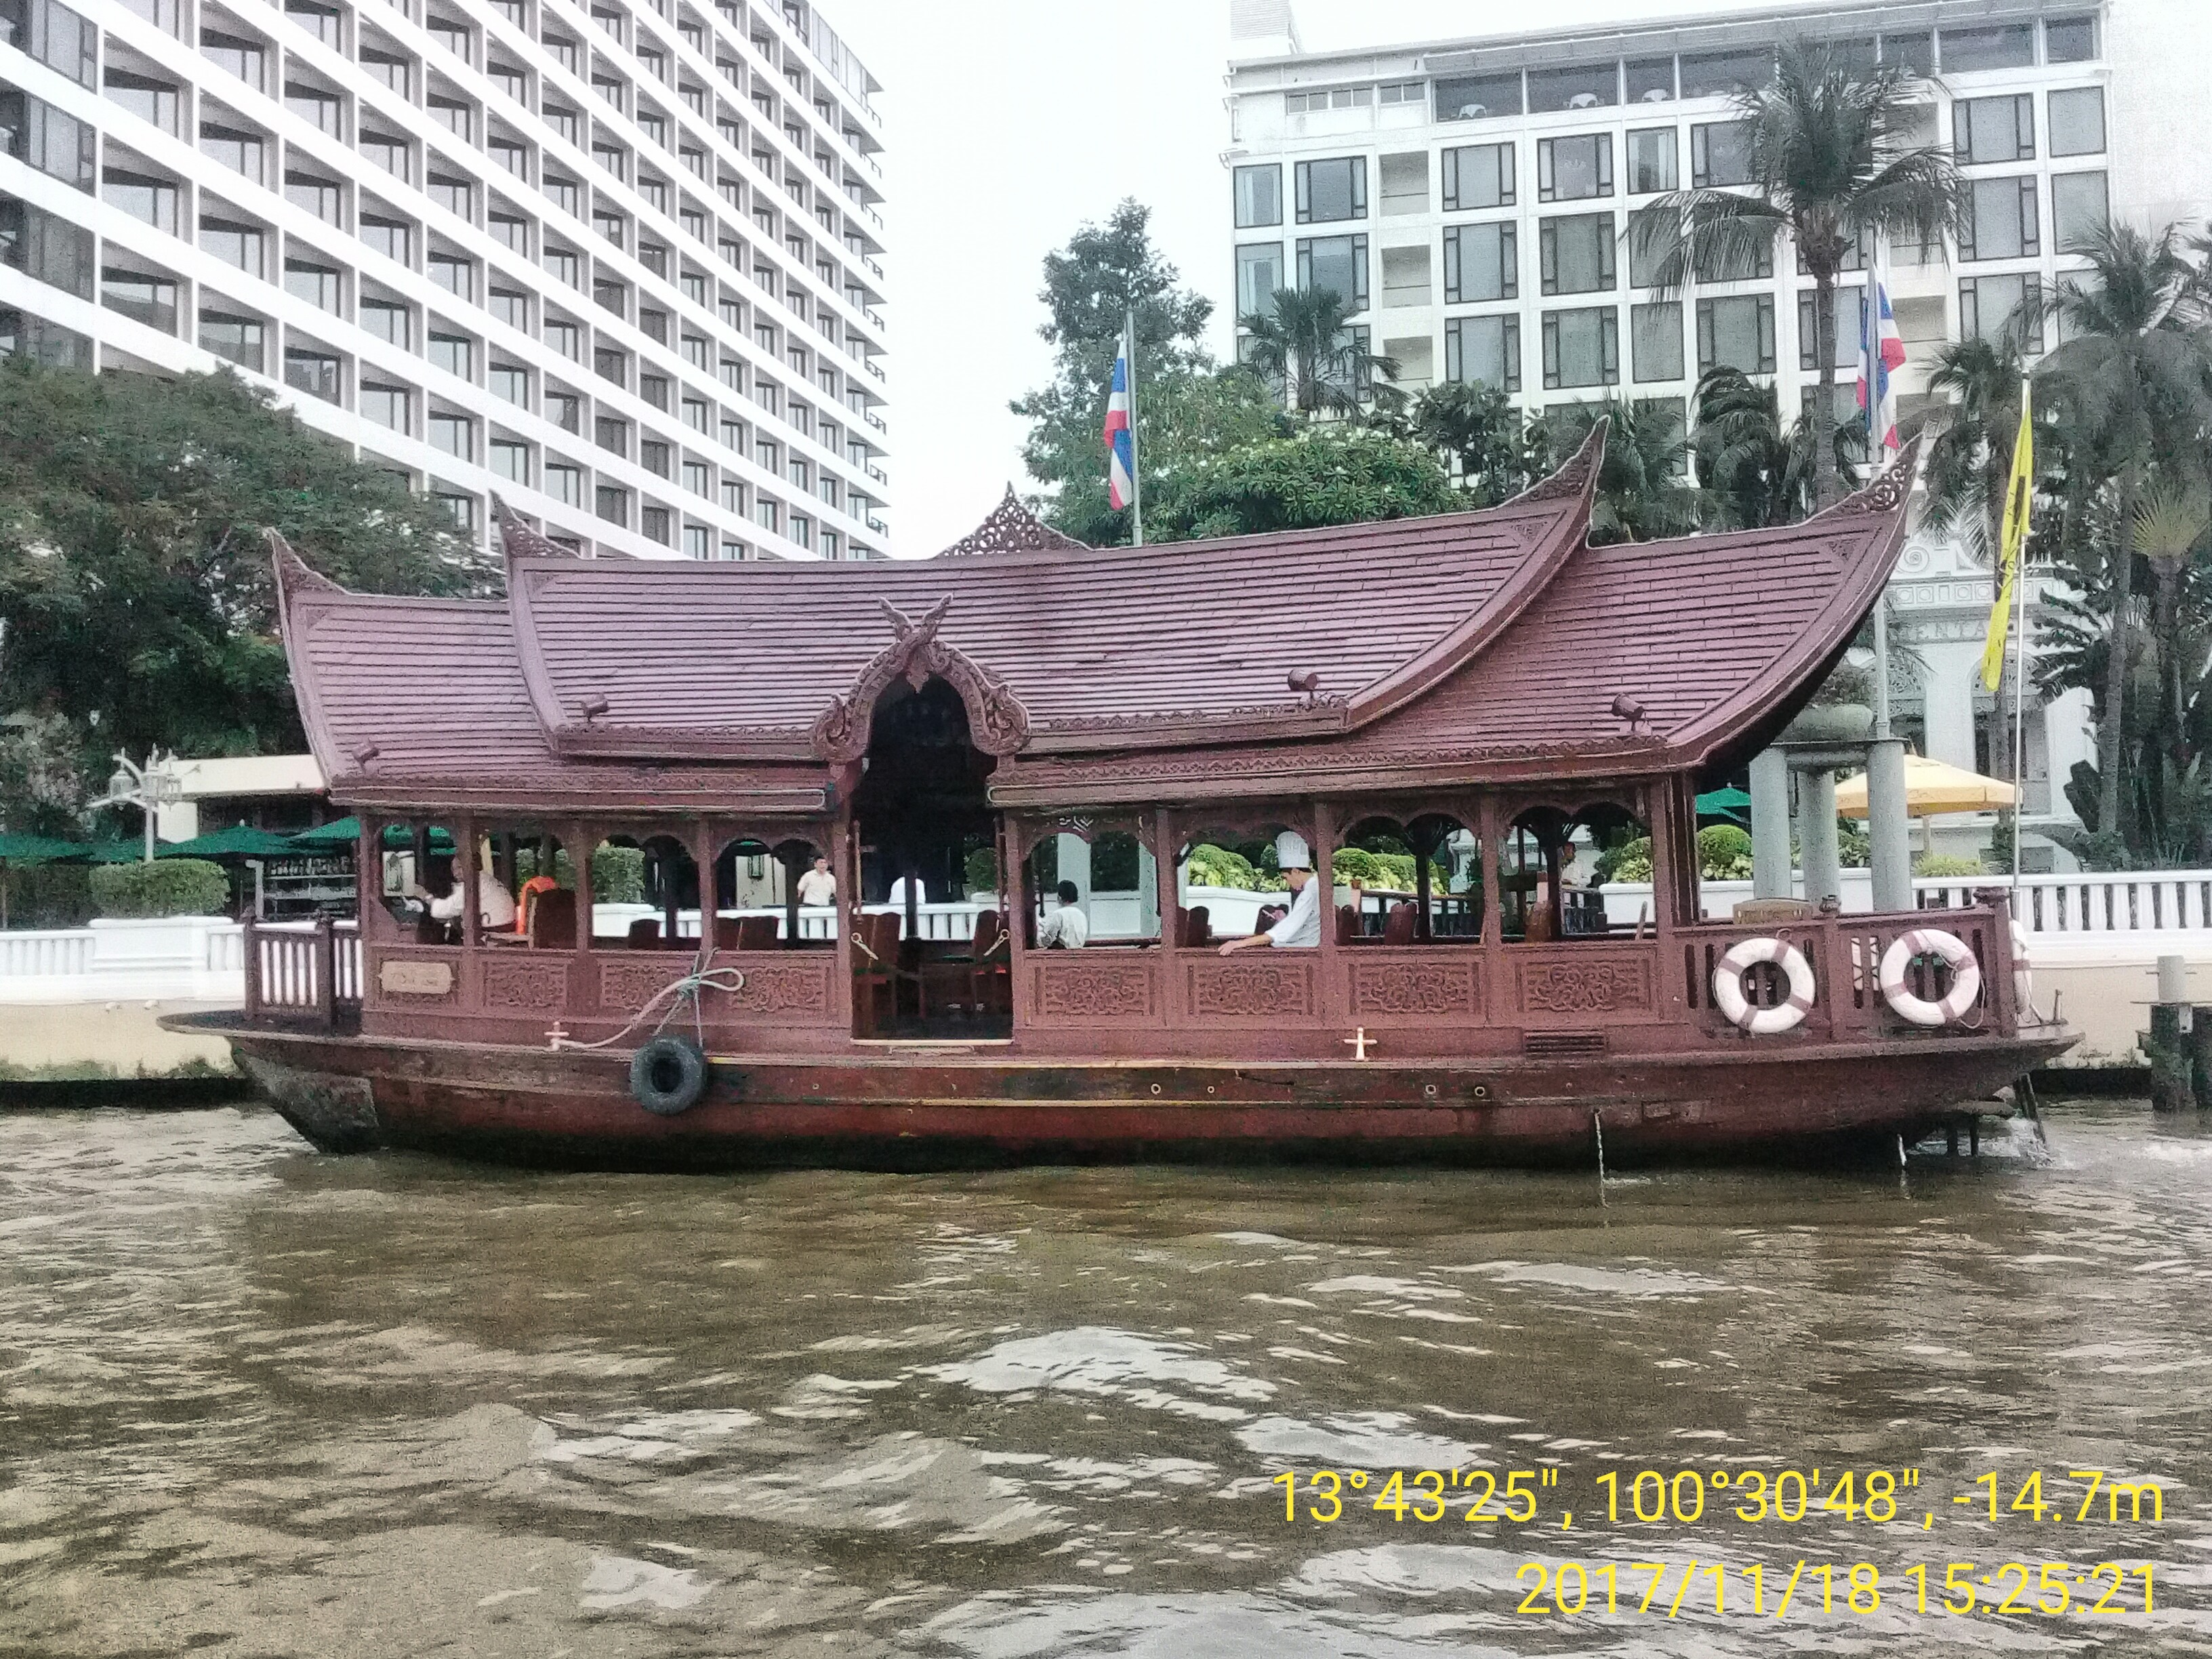 Elaborately-carved kraachaeng-type boat used to shuttle hotel guests on the Chao Phraya in Bangkok. Photo taken by Mark Joseph Jochim on November 18, 2007.